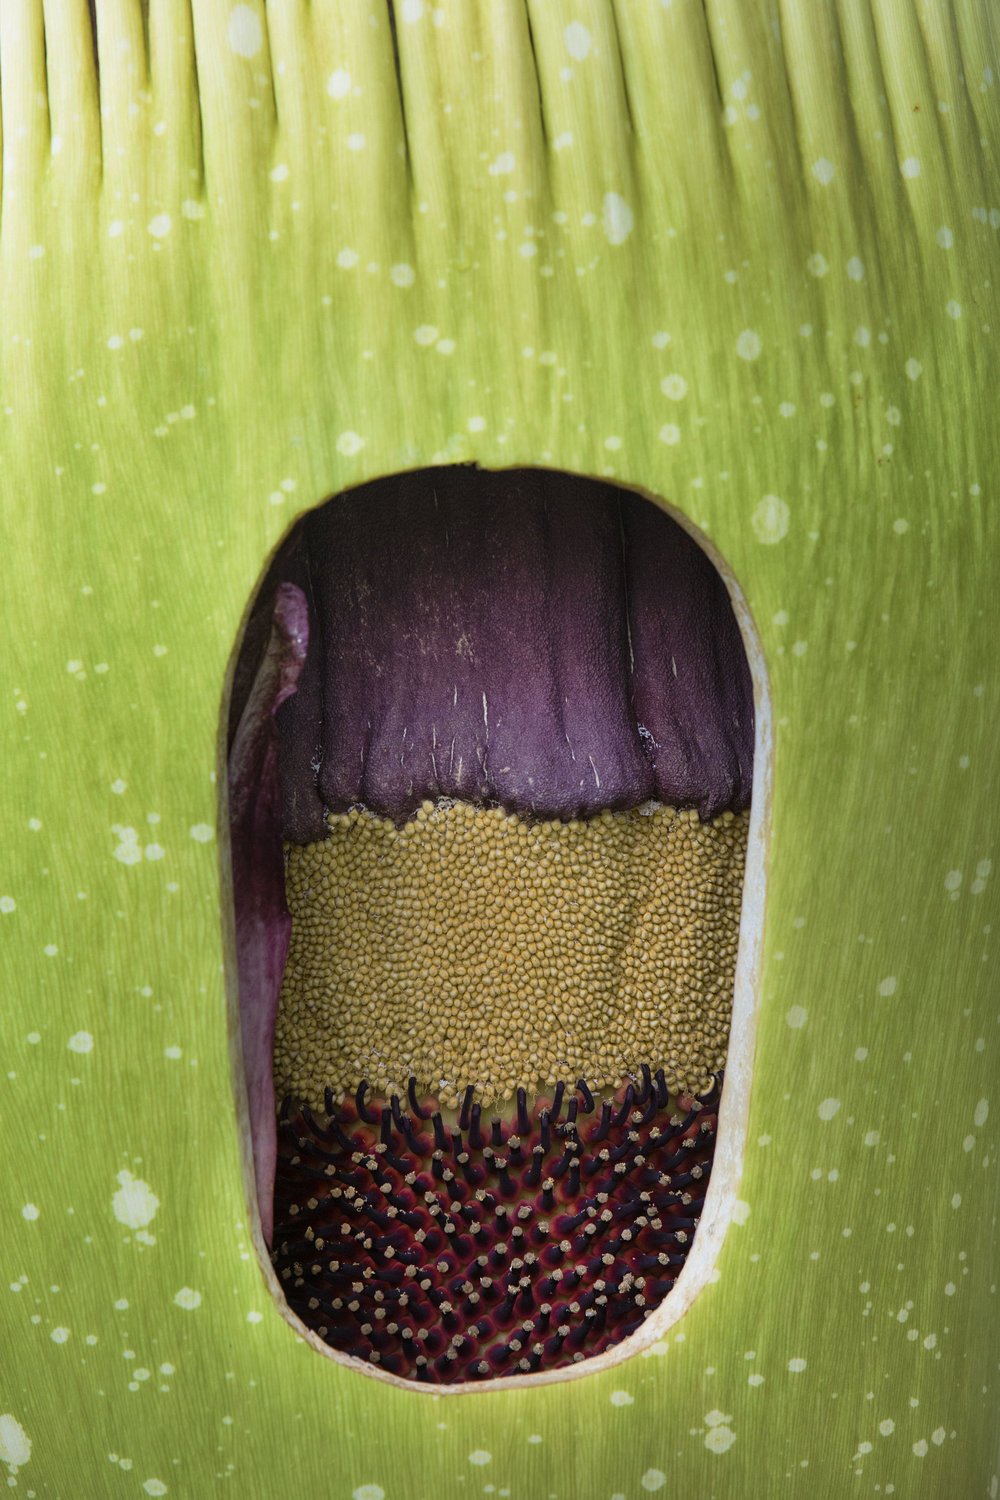 The cut portion of Morty the corpse flower.